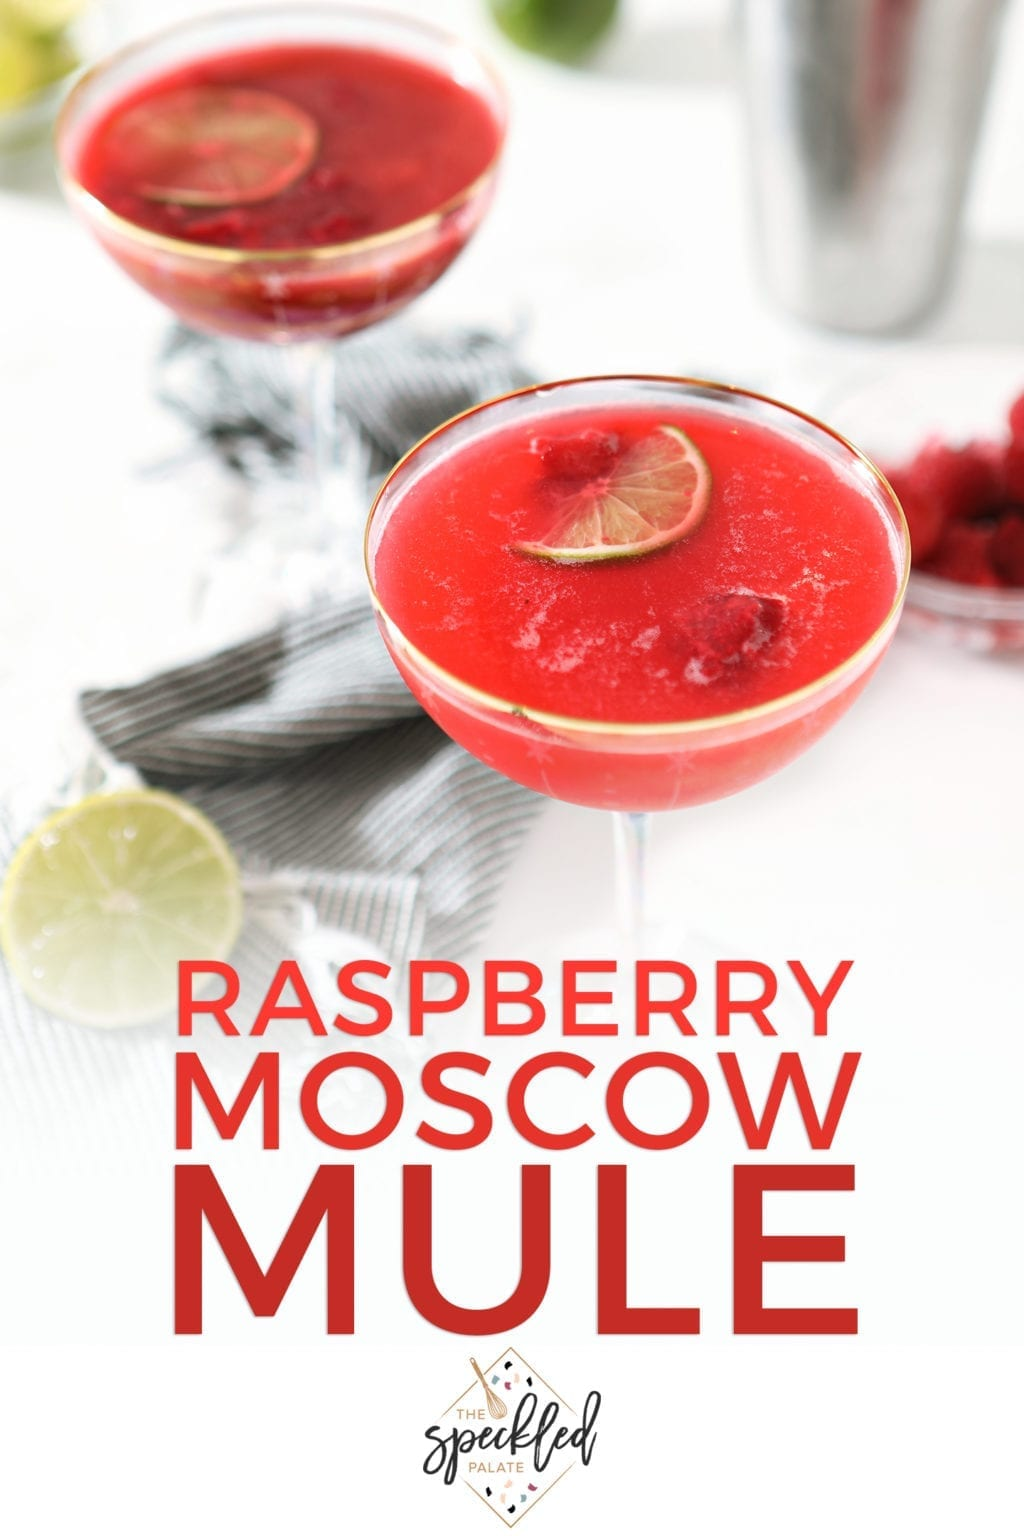 Pinterest image of two raspberry mules, garnished with limes and raspberries, and Pinterest text